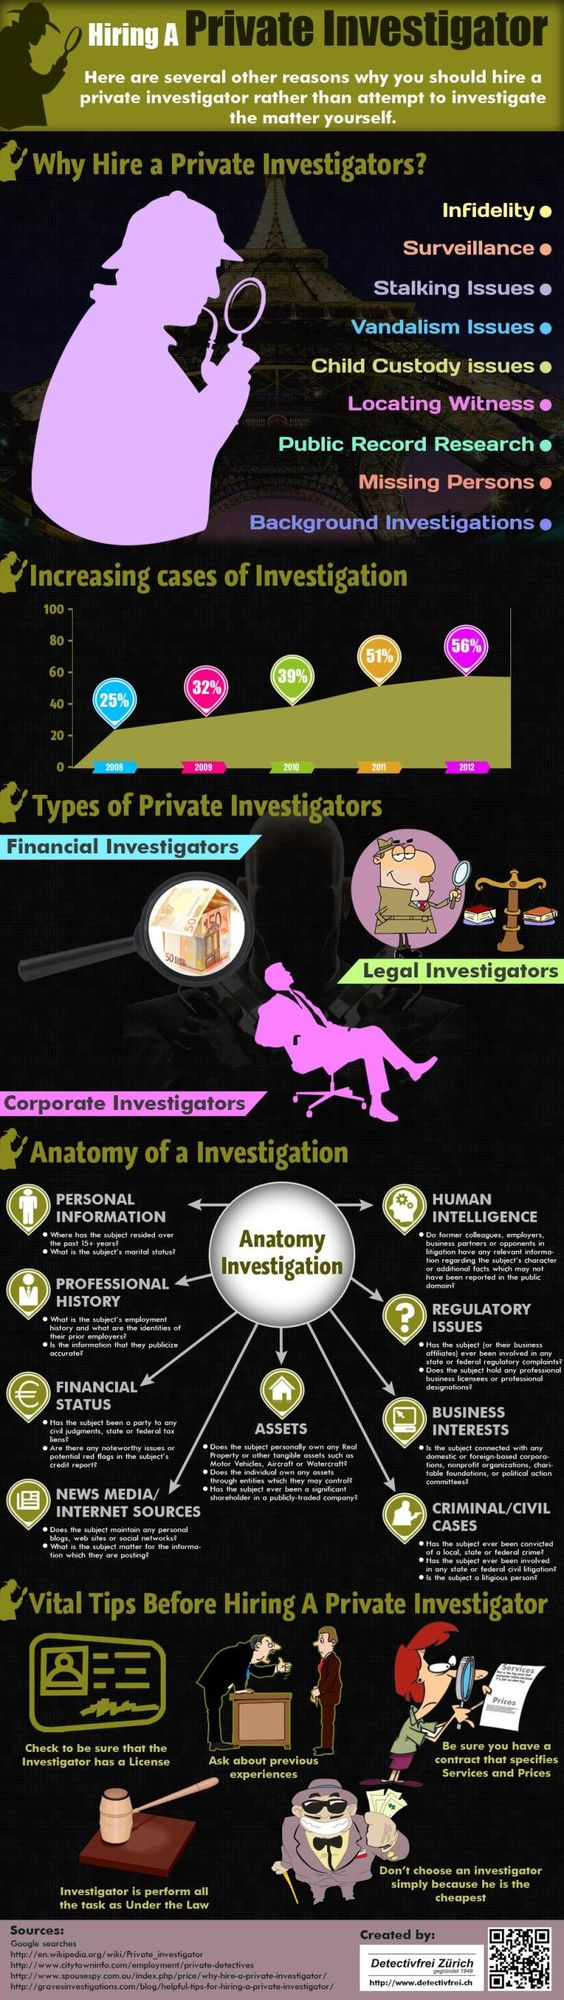 Hire A Private Investigator